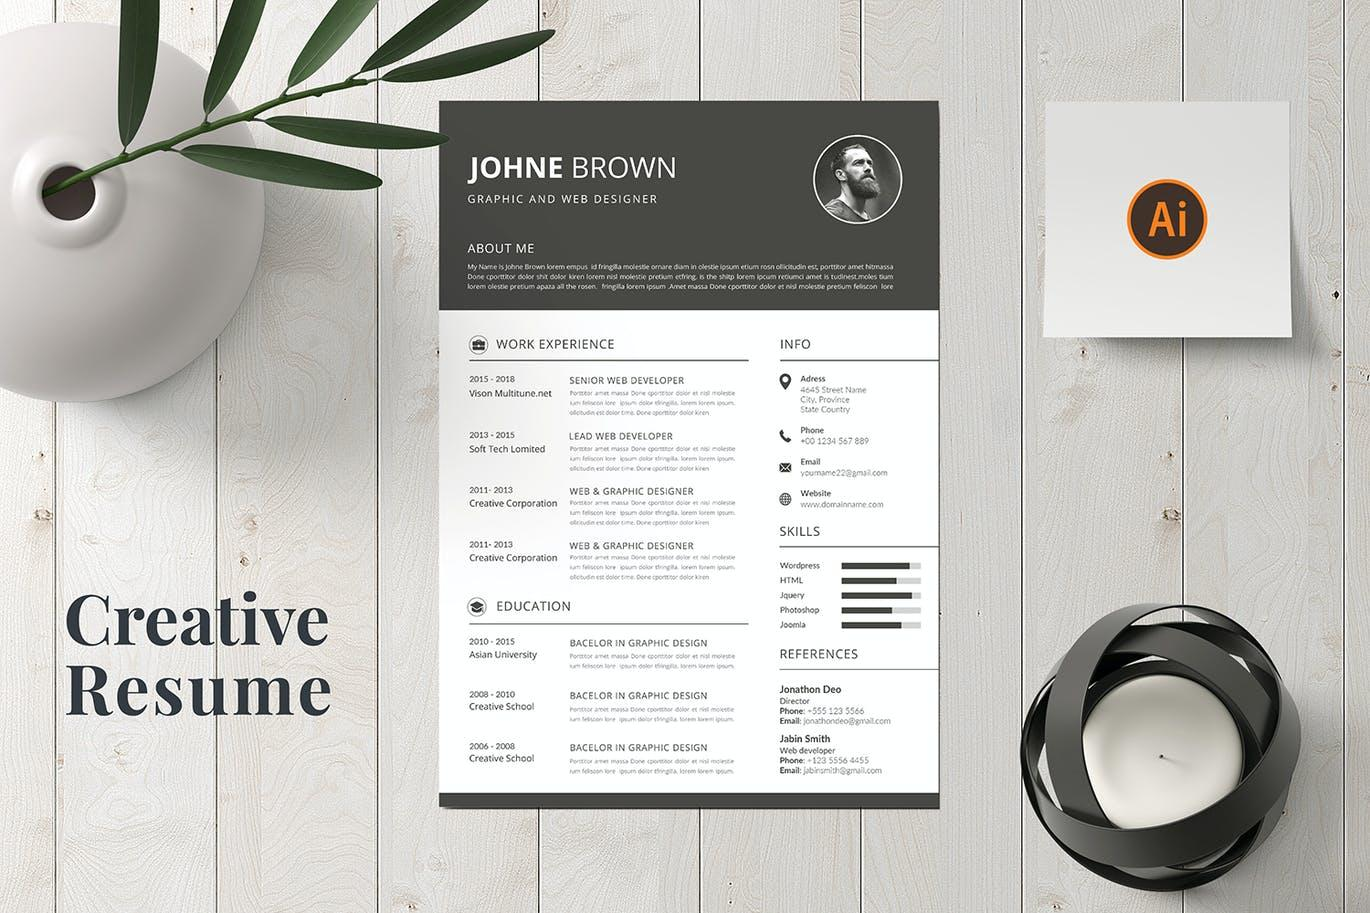 10 EFFECTIVE TIPS TO OPTIMIZE YOUR CV FOR GRAPHIC DESIGNER CAREER